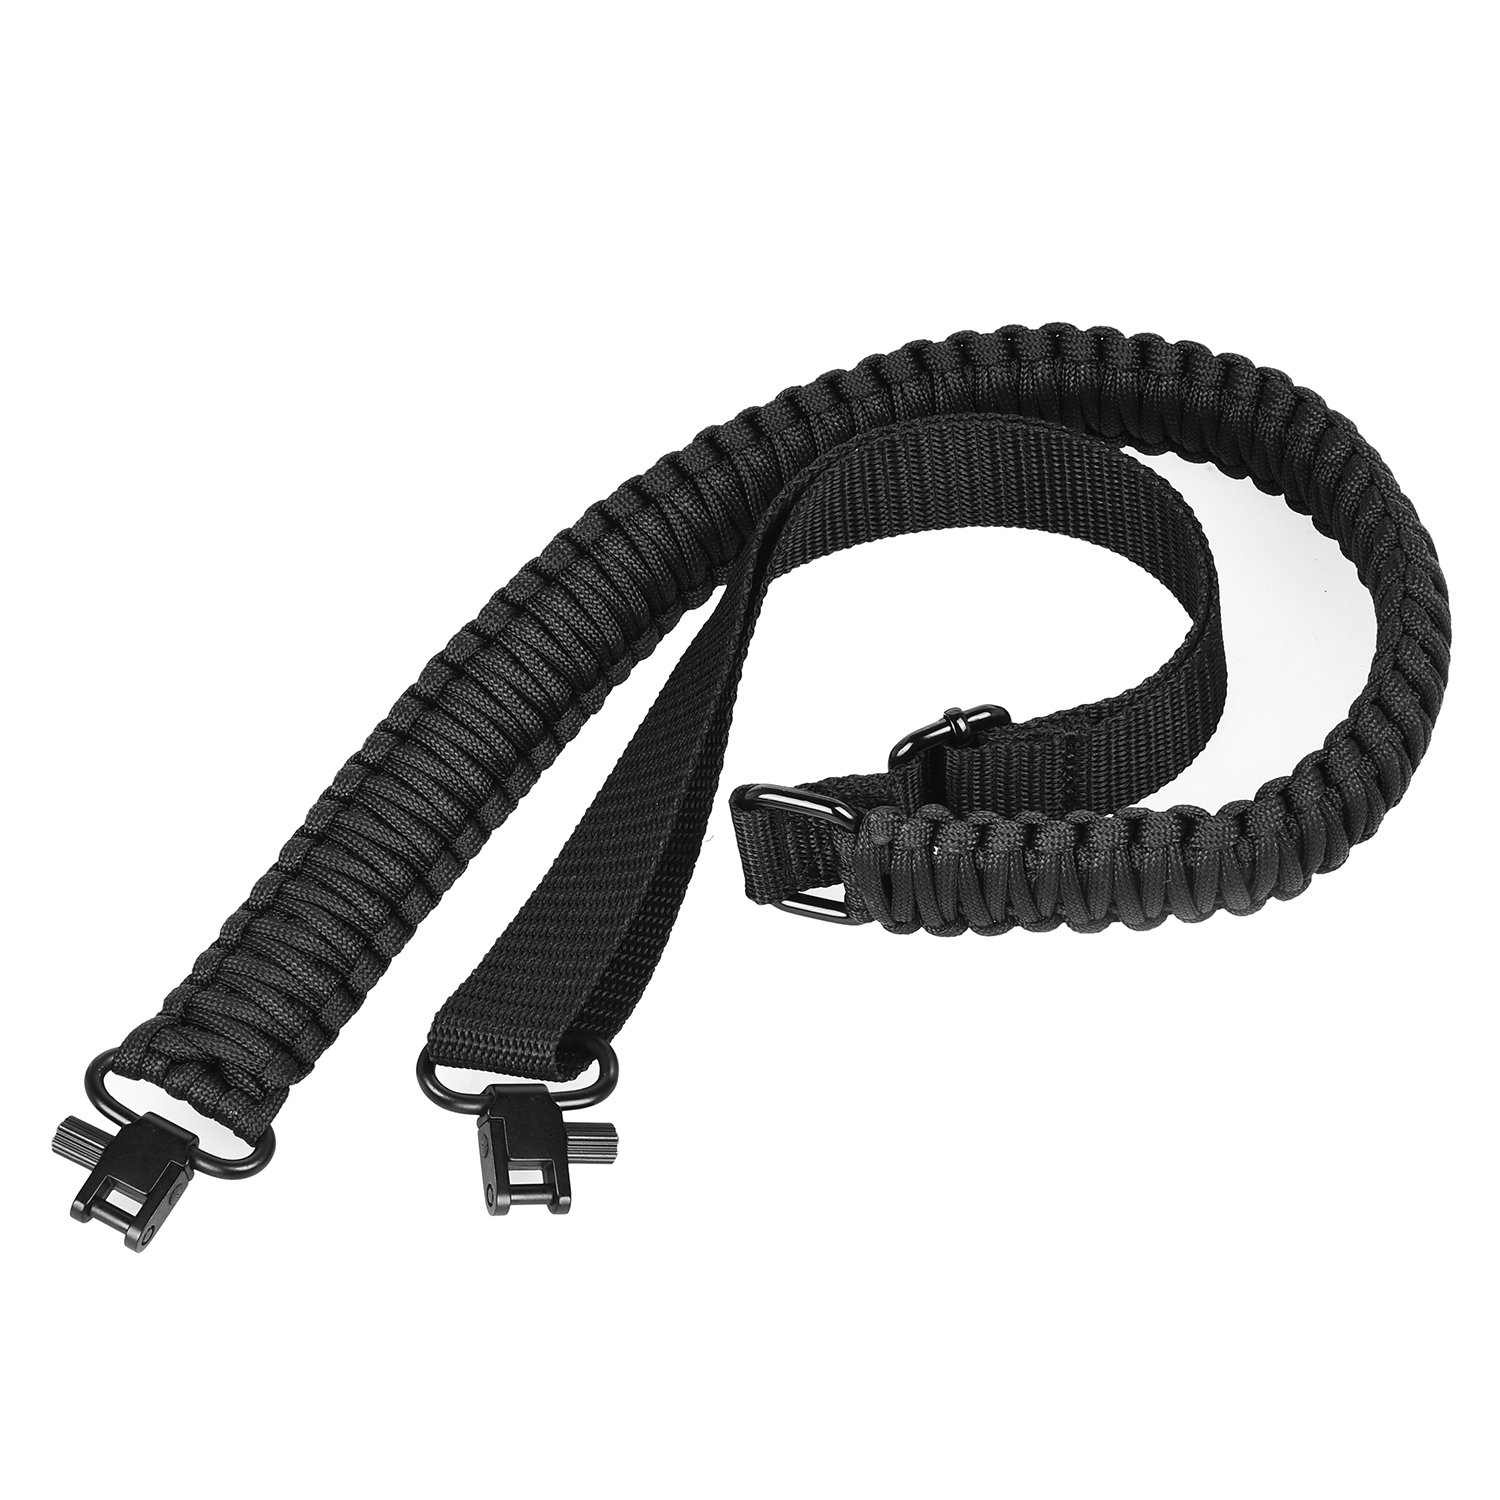 CVLIFE Rifle Sling Paracord 550 Tactical Two Points Gun Sling Adjustable Rope Quick Swivel